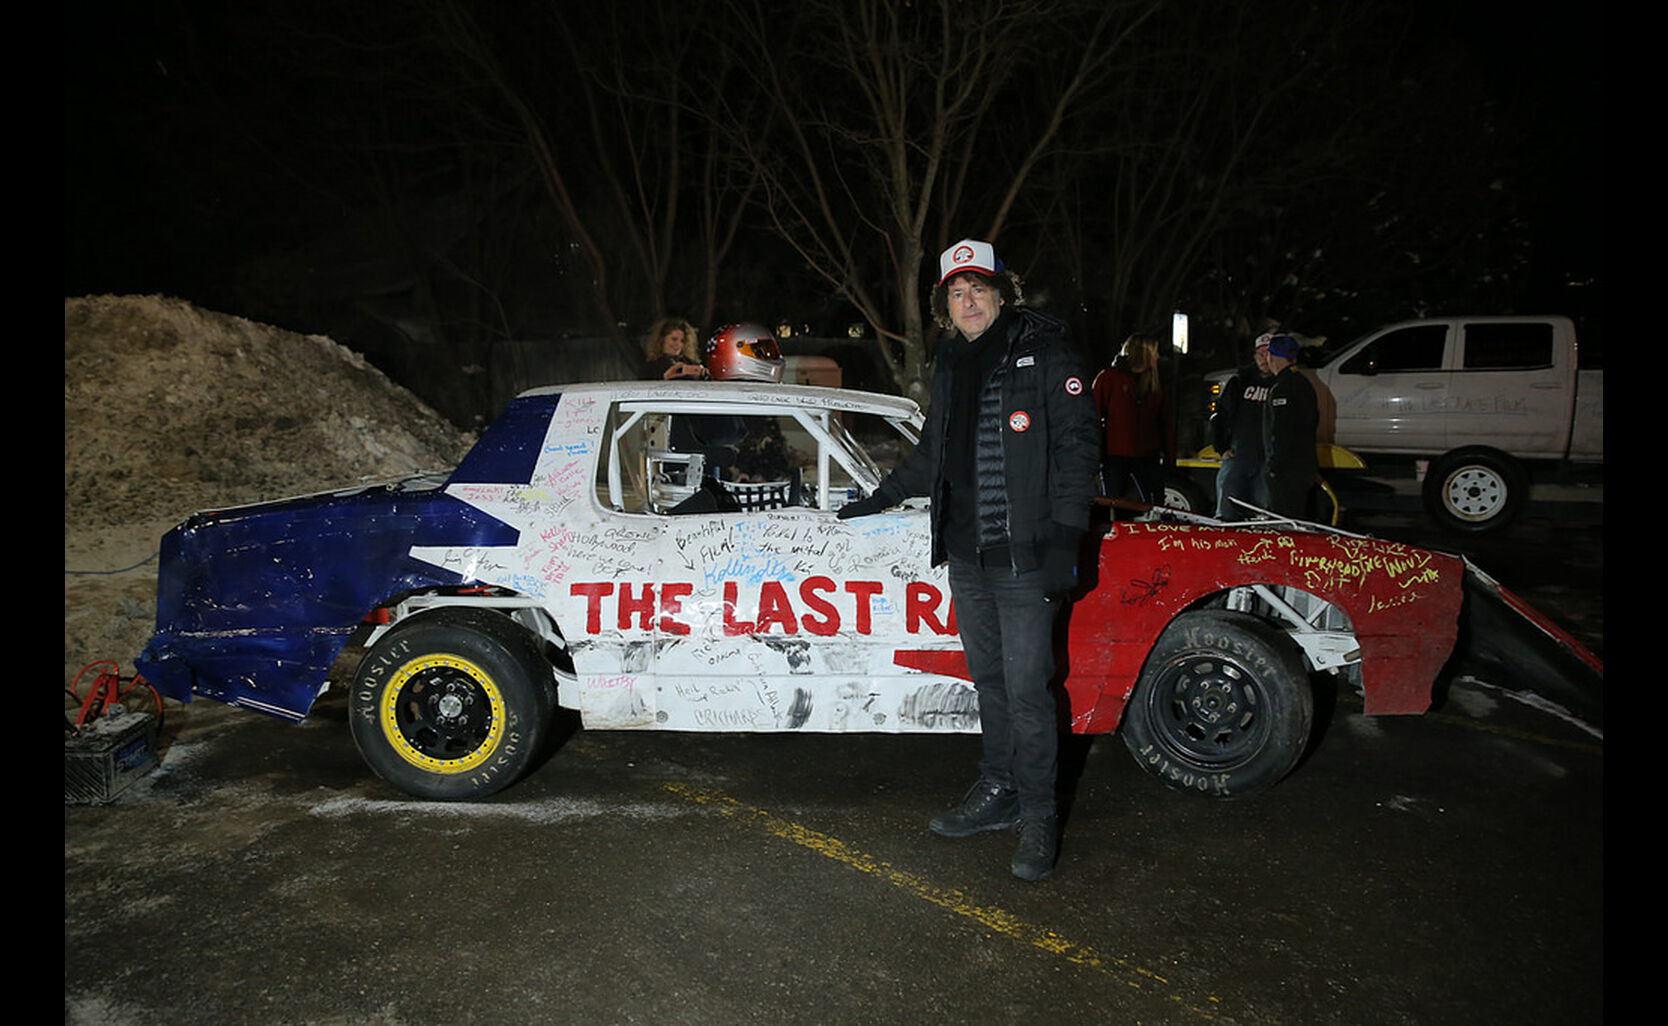 Director Michael Dweck attends the World Premiere of The Last Race by Michael Dweck,